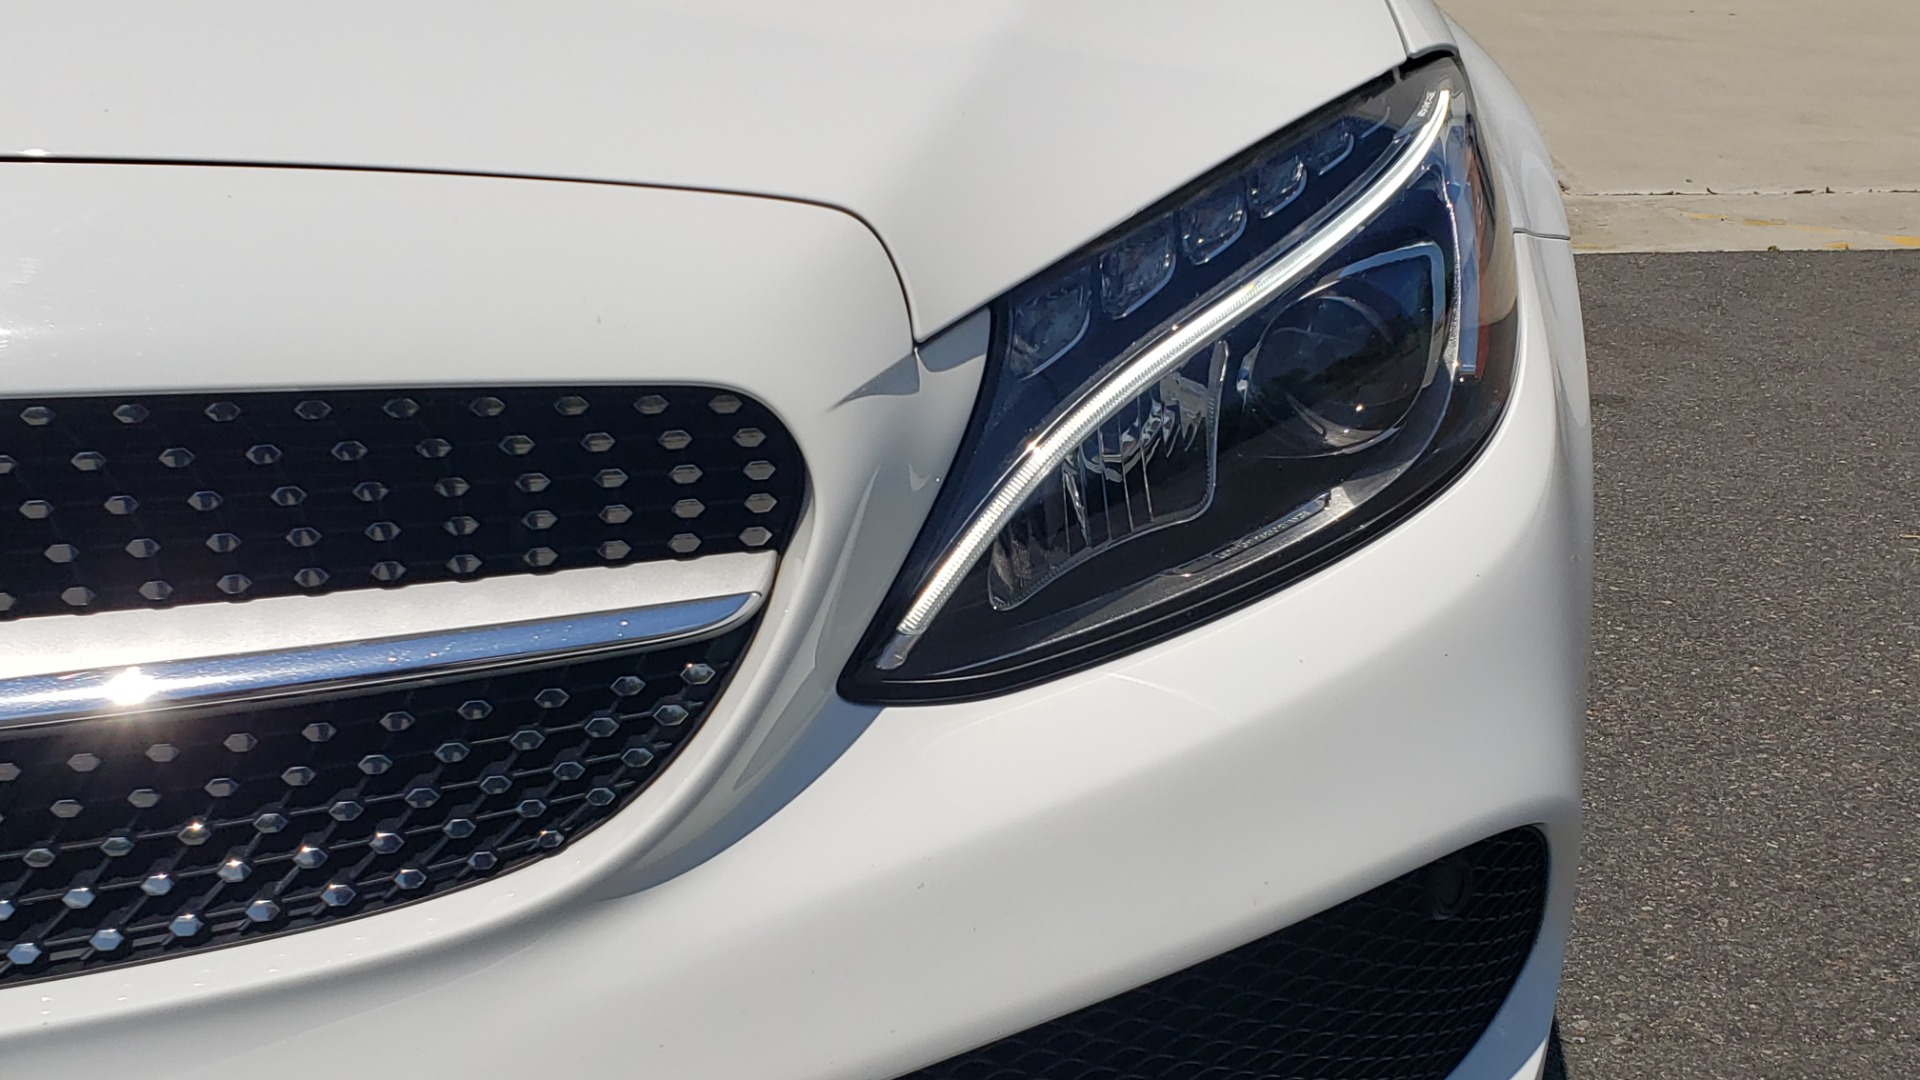 Used 2018 Mercedes-Benz C-CLASS C 300 CABRIOLET PREMIUM / AWD / BURMESTER SND / APPLE / REARVIEW for sale $44,995 at Formula Imports in Charlotte NC 28227 38